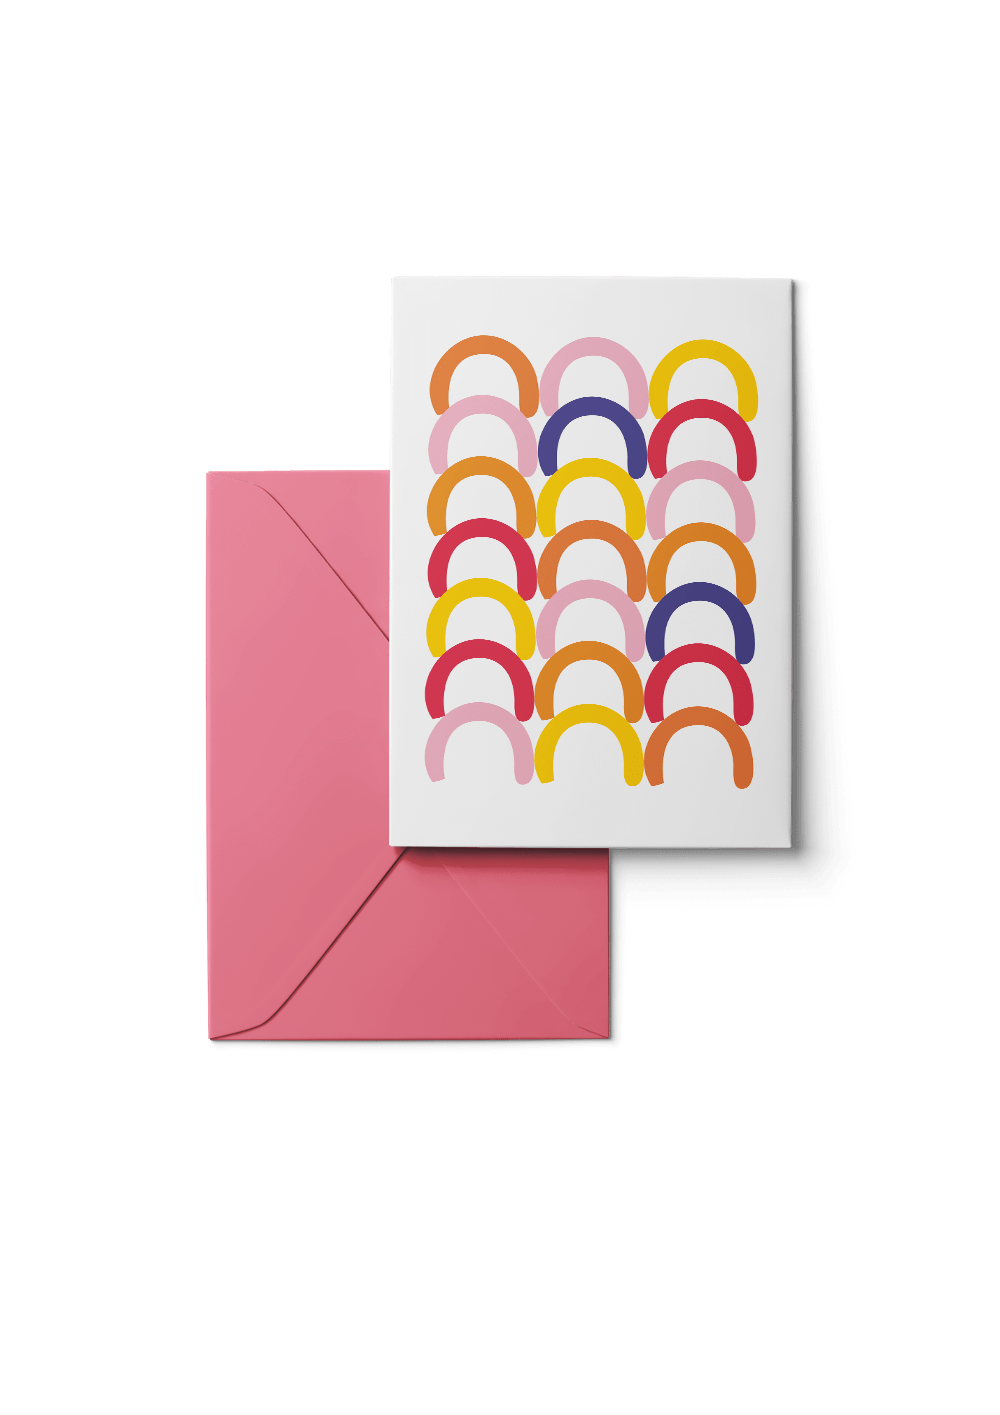 Custom Huddle, Ochre, 6 Karten by Karten Design Fabrik. Supplier of designer Greeting Cards, Gift Wrap, Christmas Cards & Invitations to leading design stores including Connox, Modulor, Magazin & Manufactum.